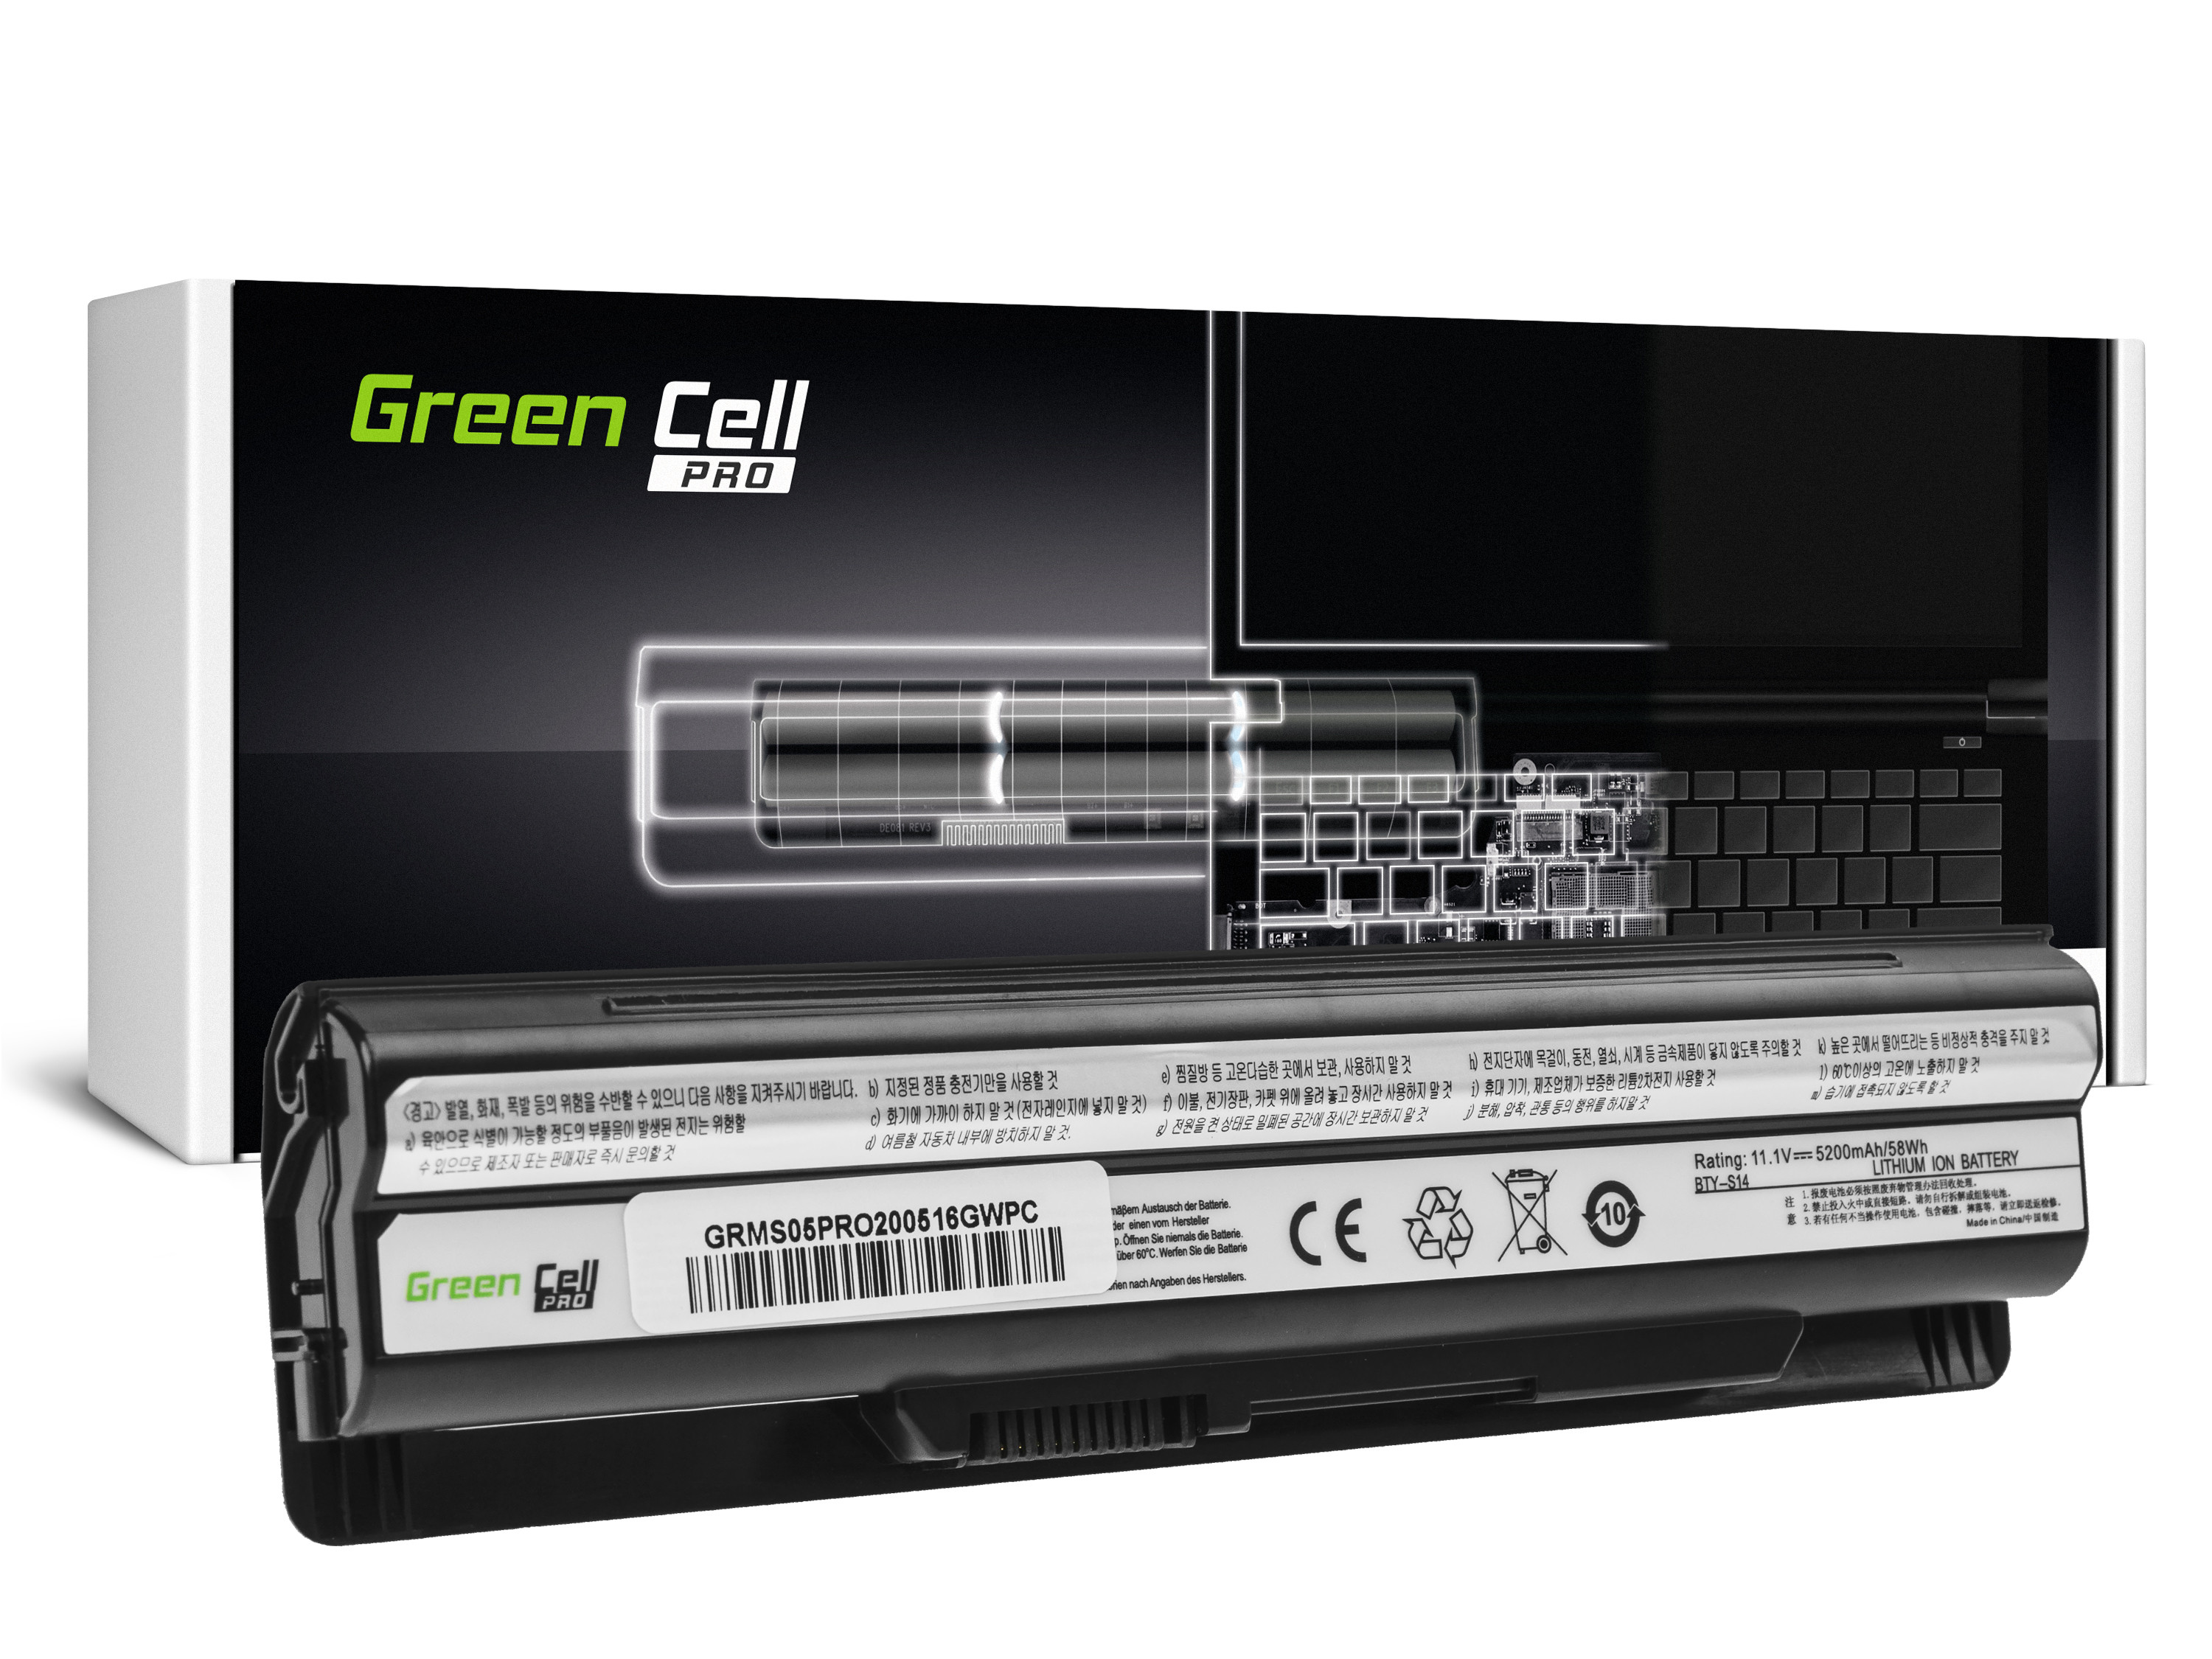 Green Cell MS05PRO Baterie MSI BTY-S14 BTY-S15, MSI CR650 CX650 FX400 FX600 FX700 GE60 GE70 GP60 GP70 GE620 5200mAh Li-ion - neoriginální